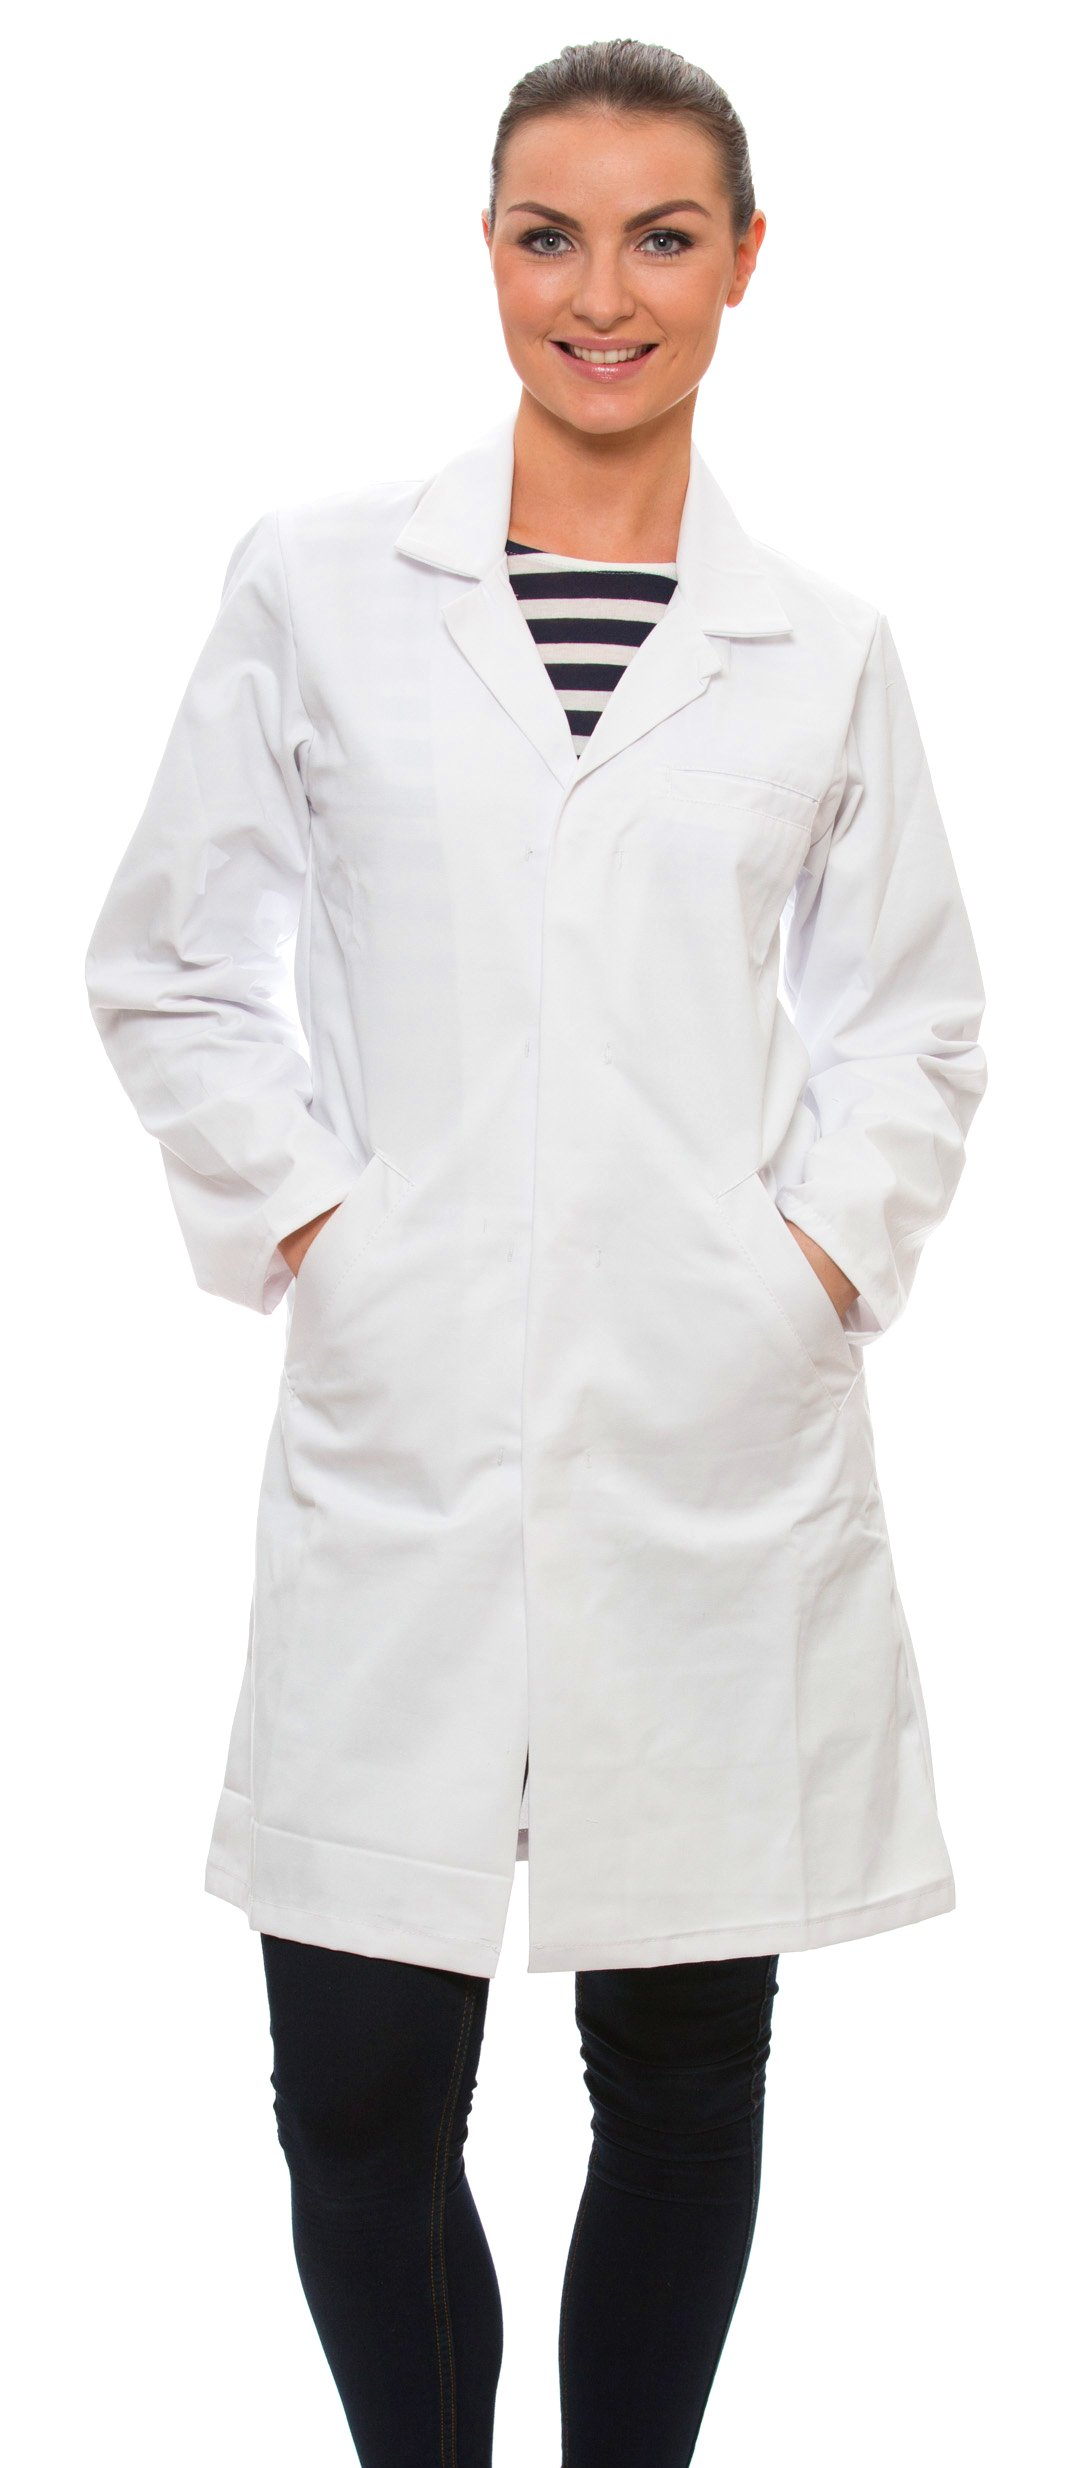 Dr. James Women's 100% Cotton White Lab Coat 39 Inch Length Size 6 US-04-C